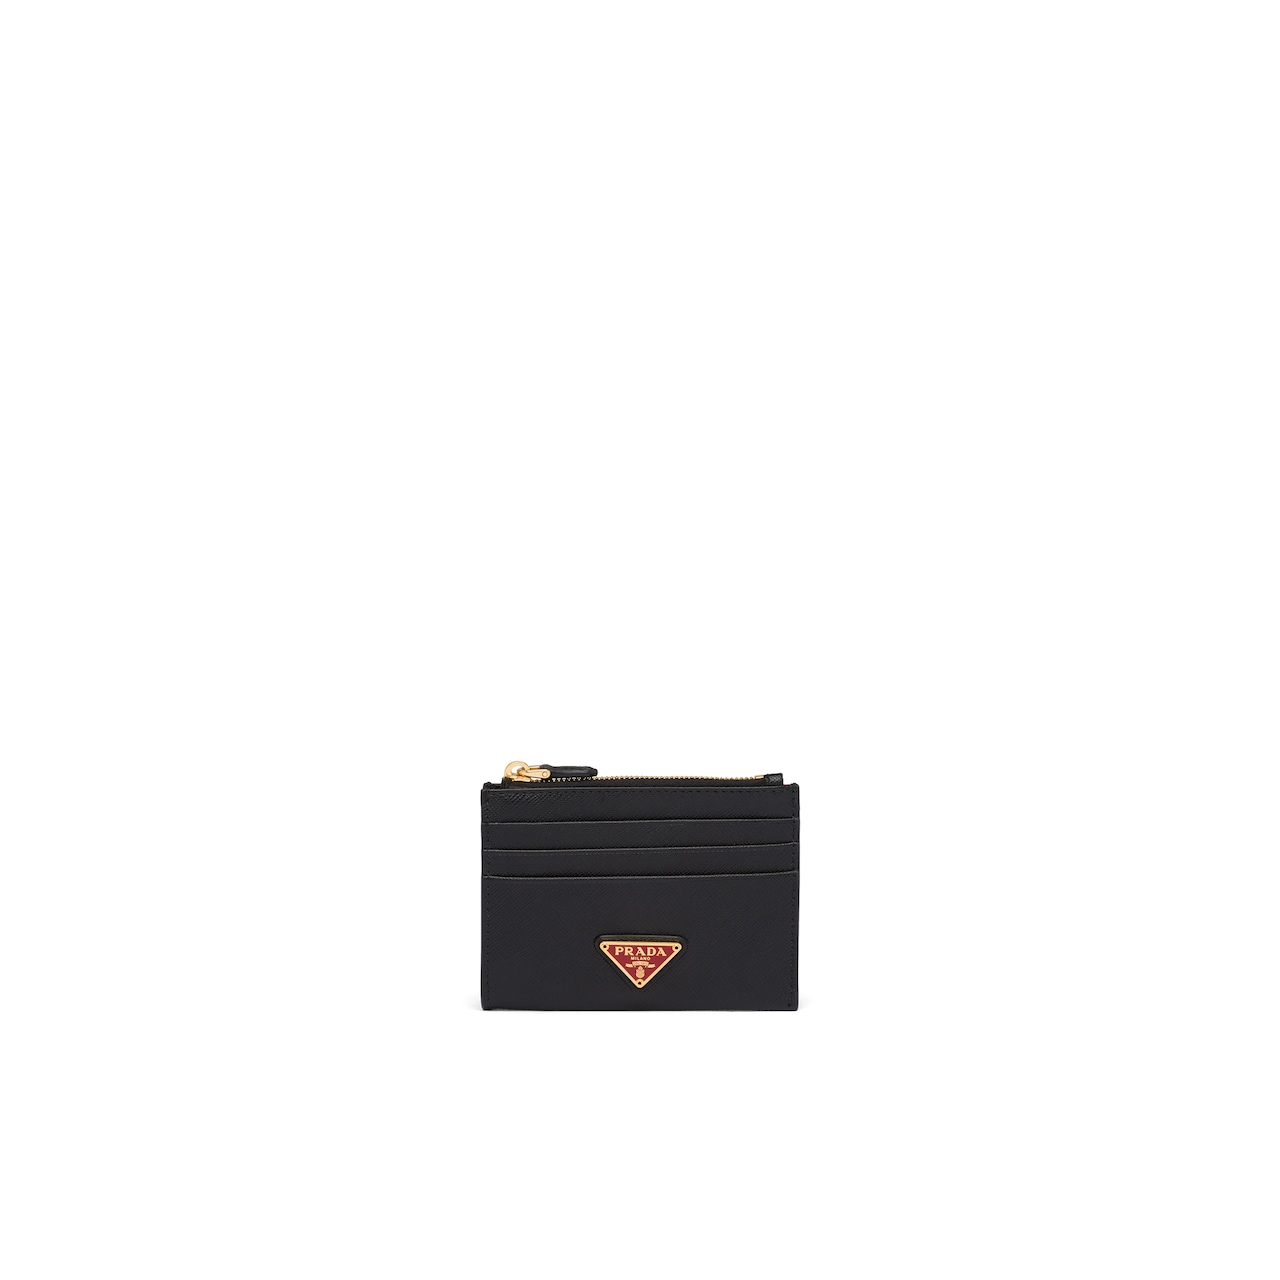 Prada Saffiano leather credit card holder 1